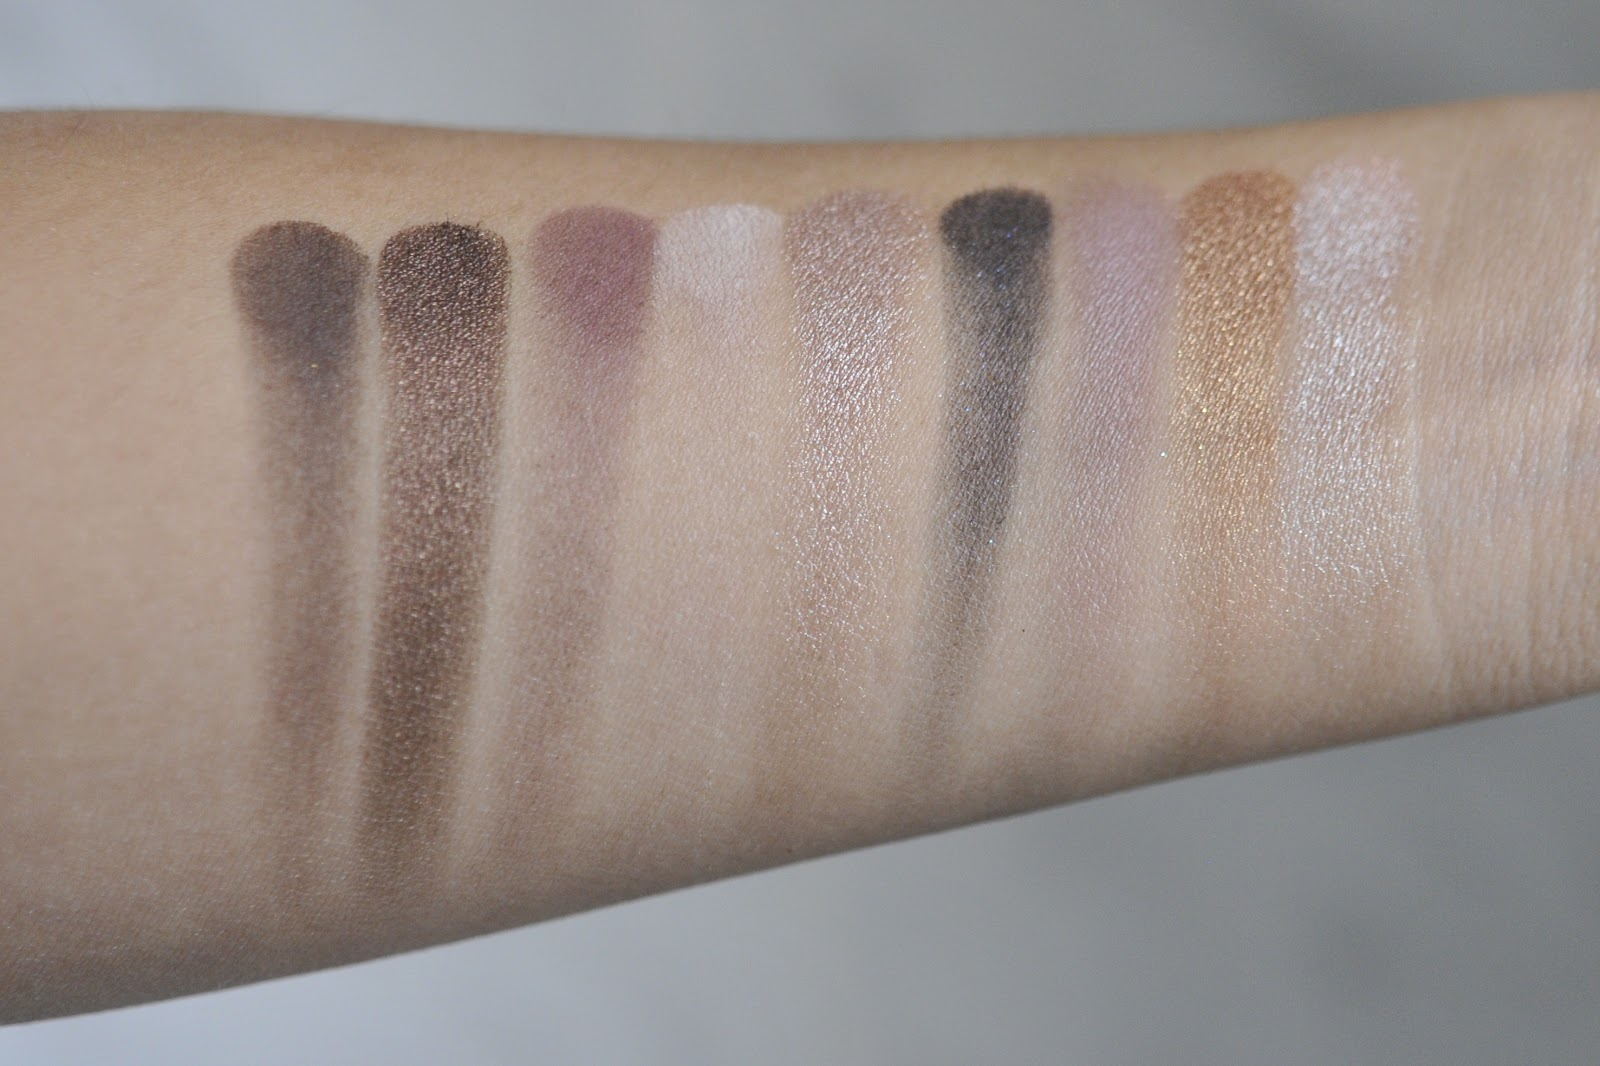 Natural At Night Eyeshadow Palette by Too Faced #13